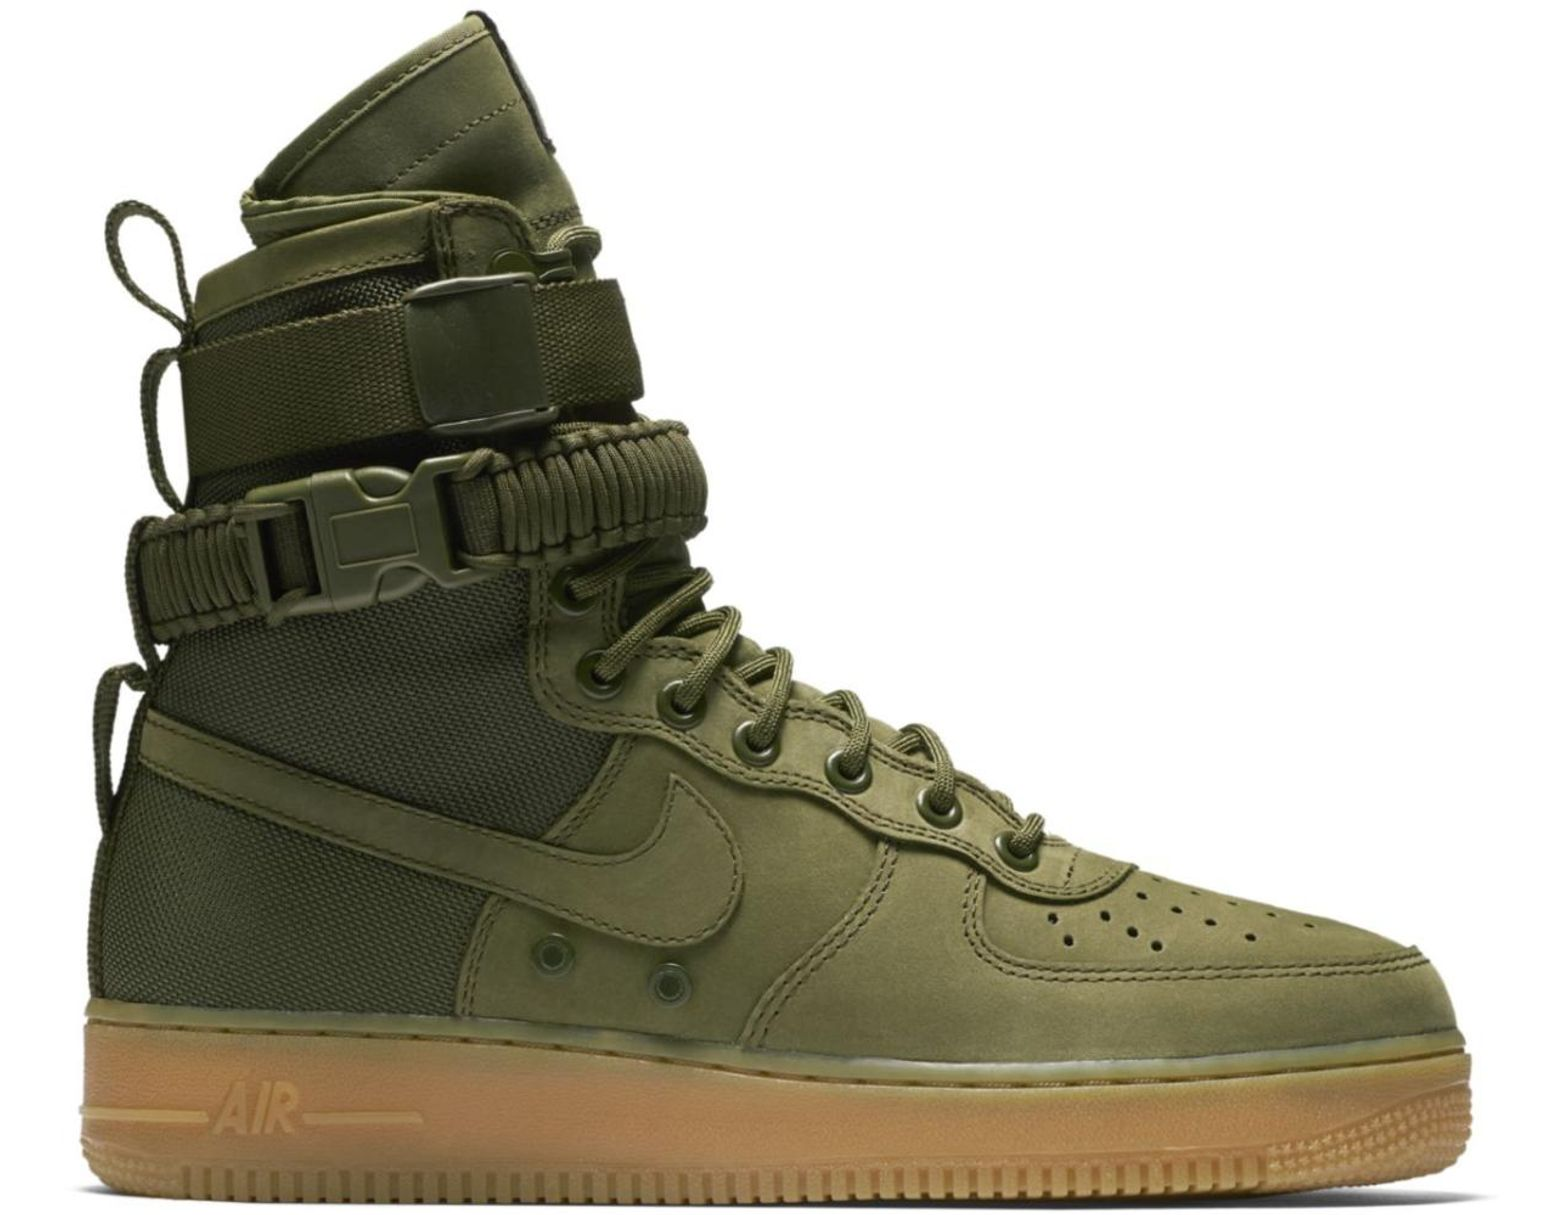 Men's Green Sf Air Force 1 Faded Olive